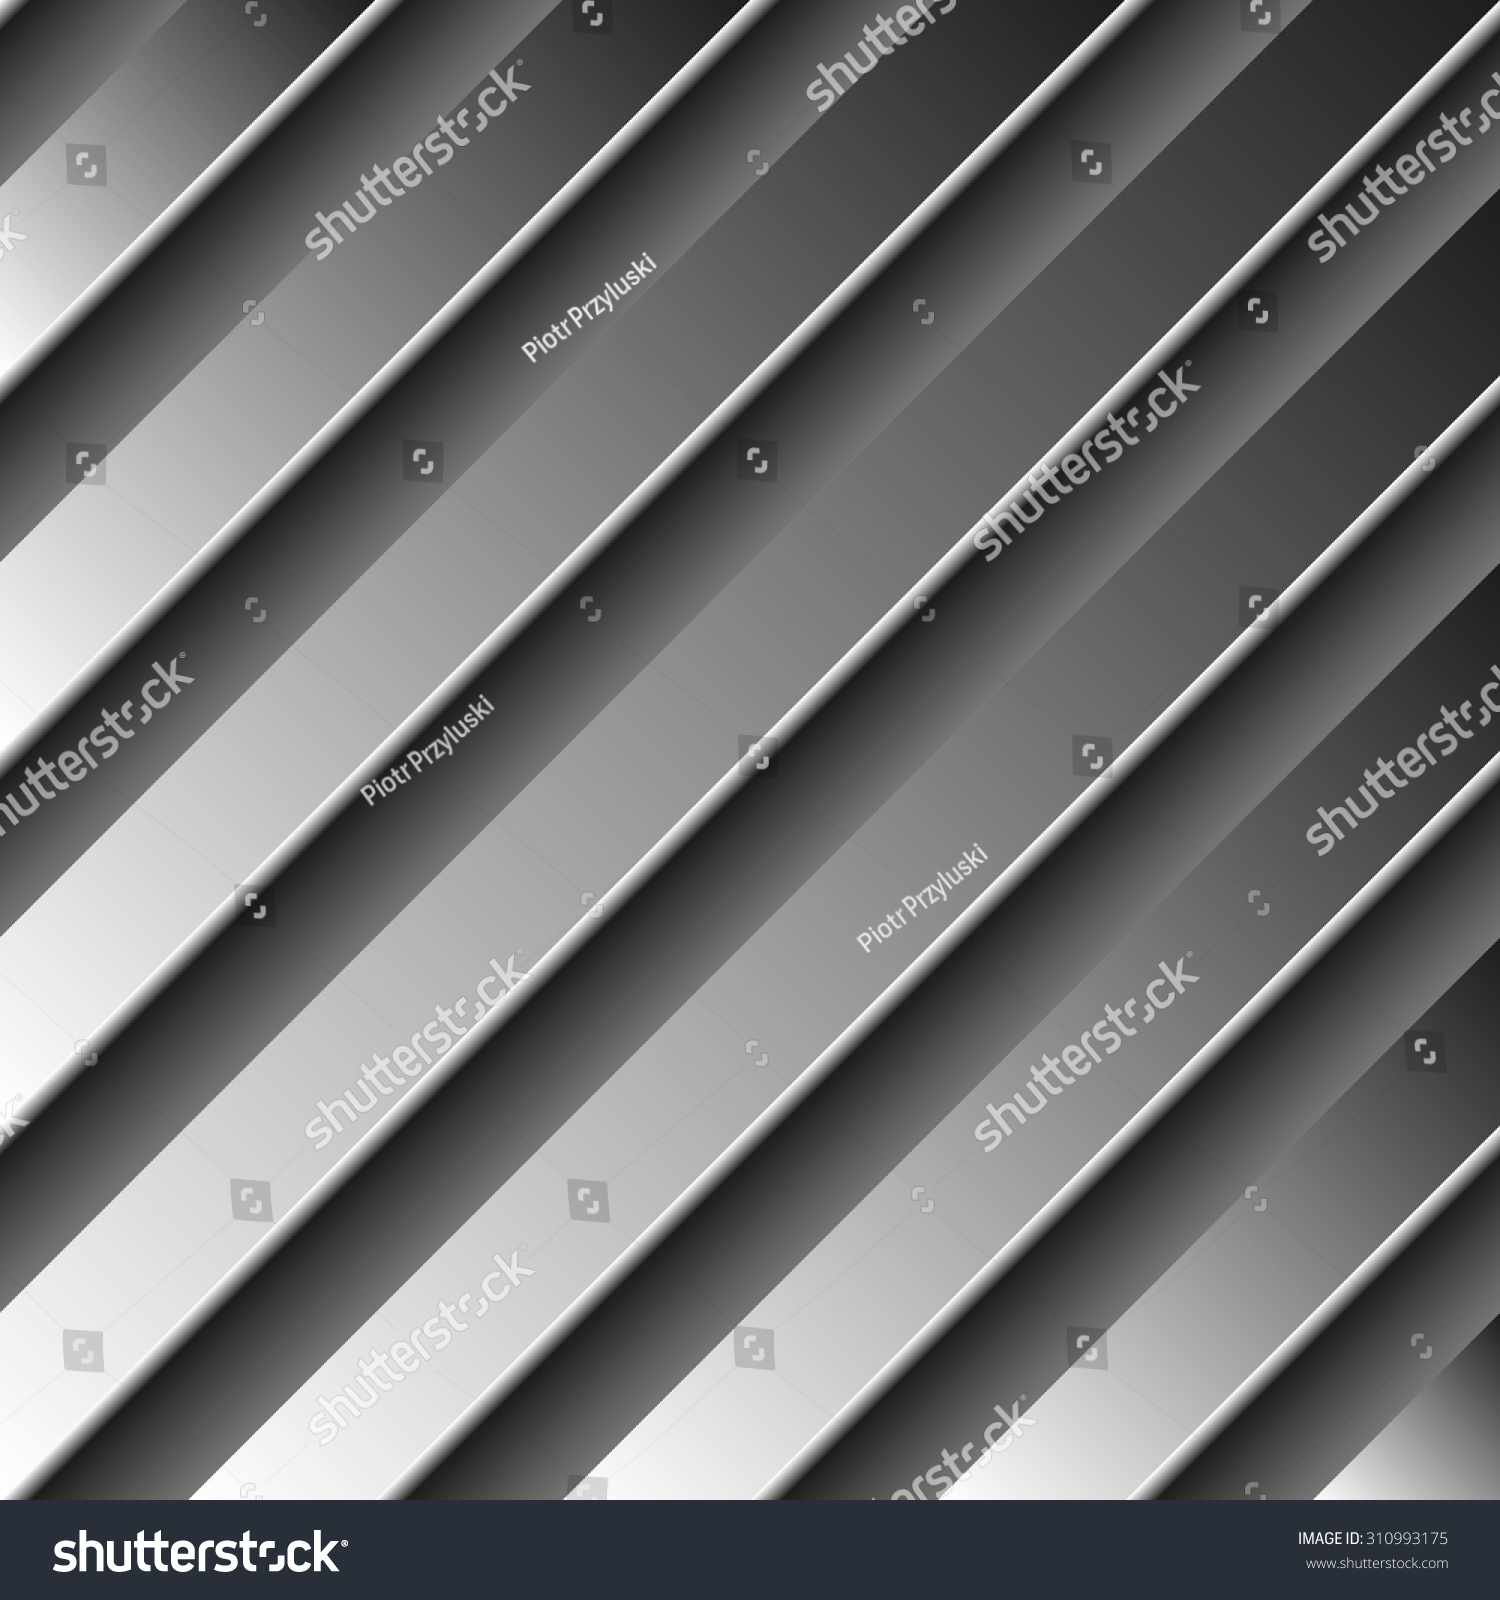 Linear metal background photo